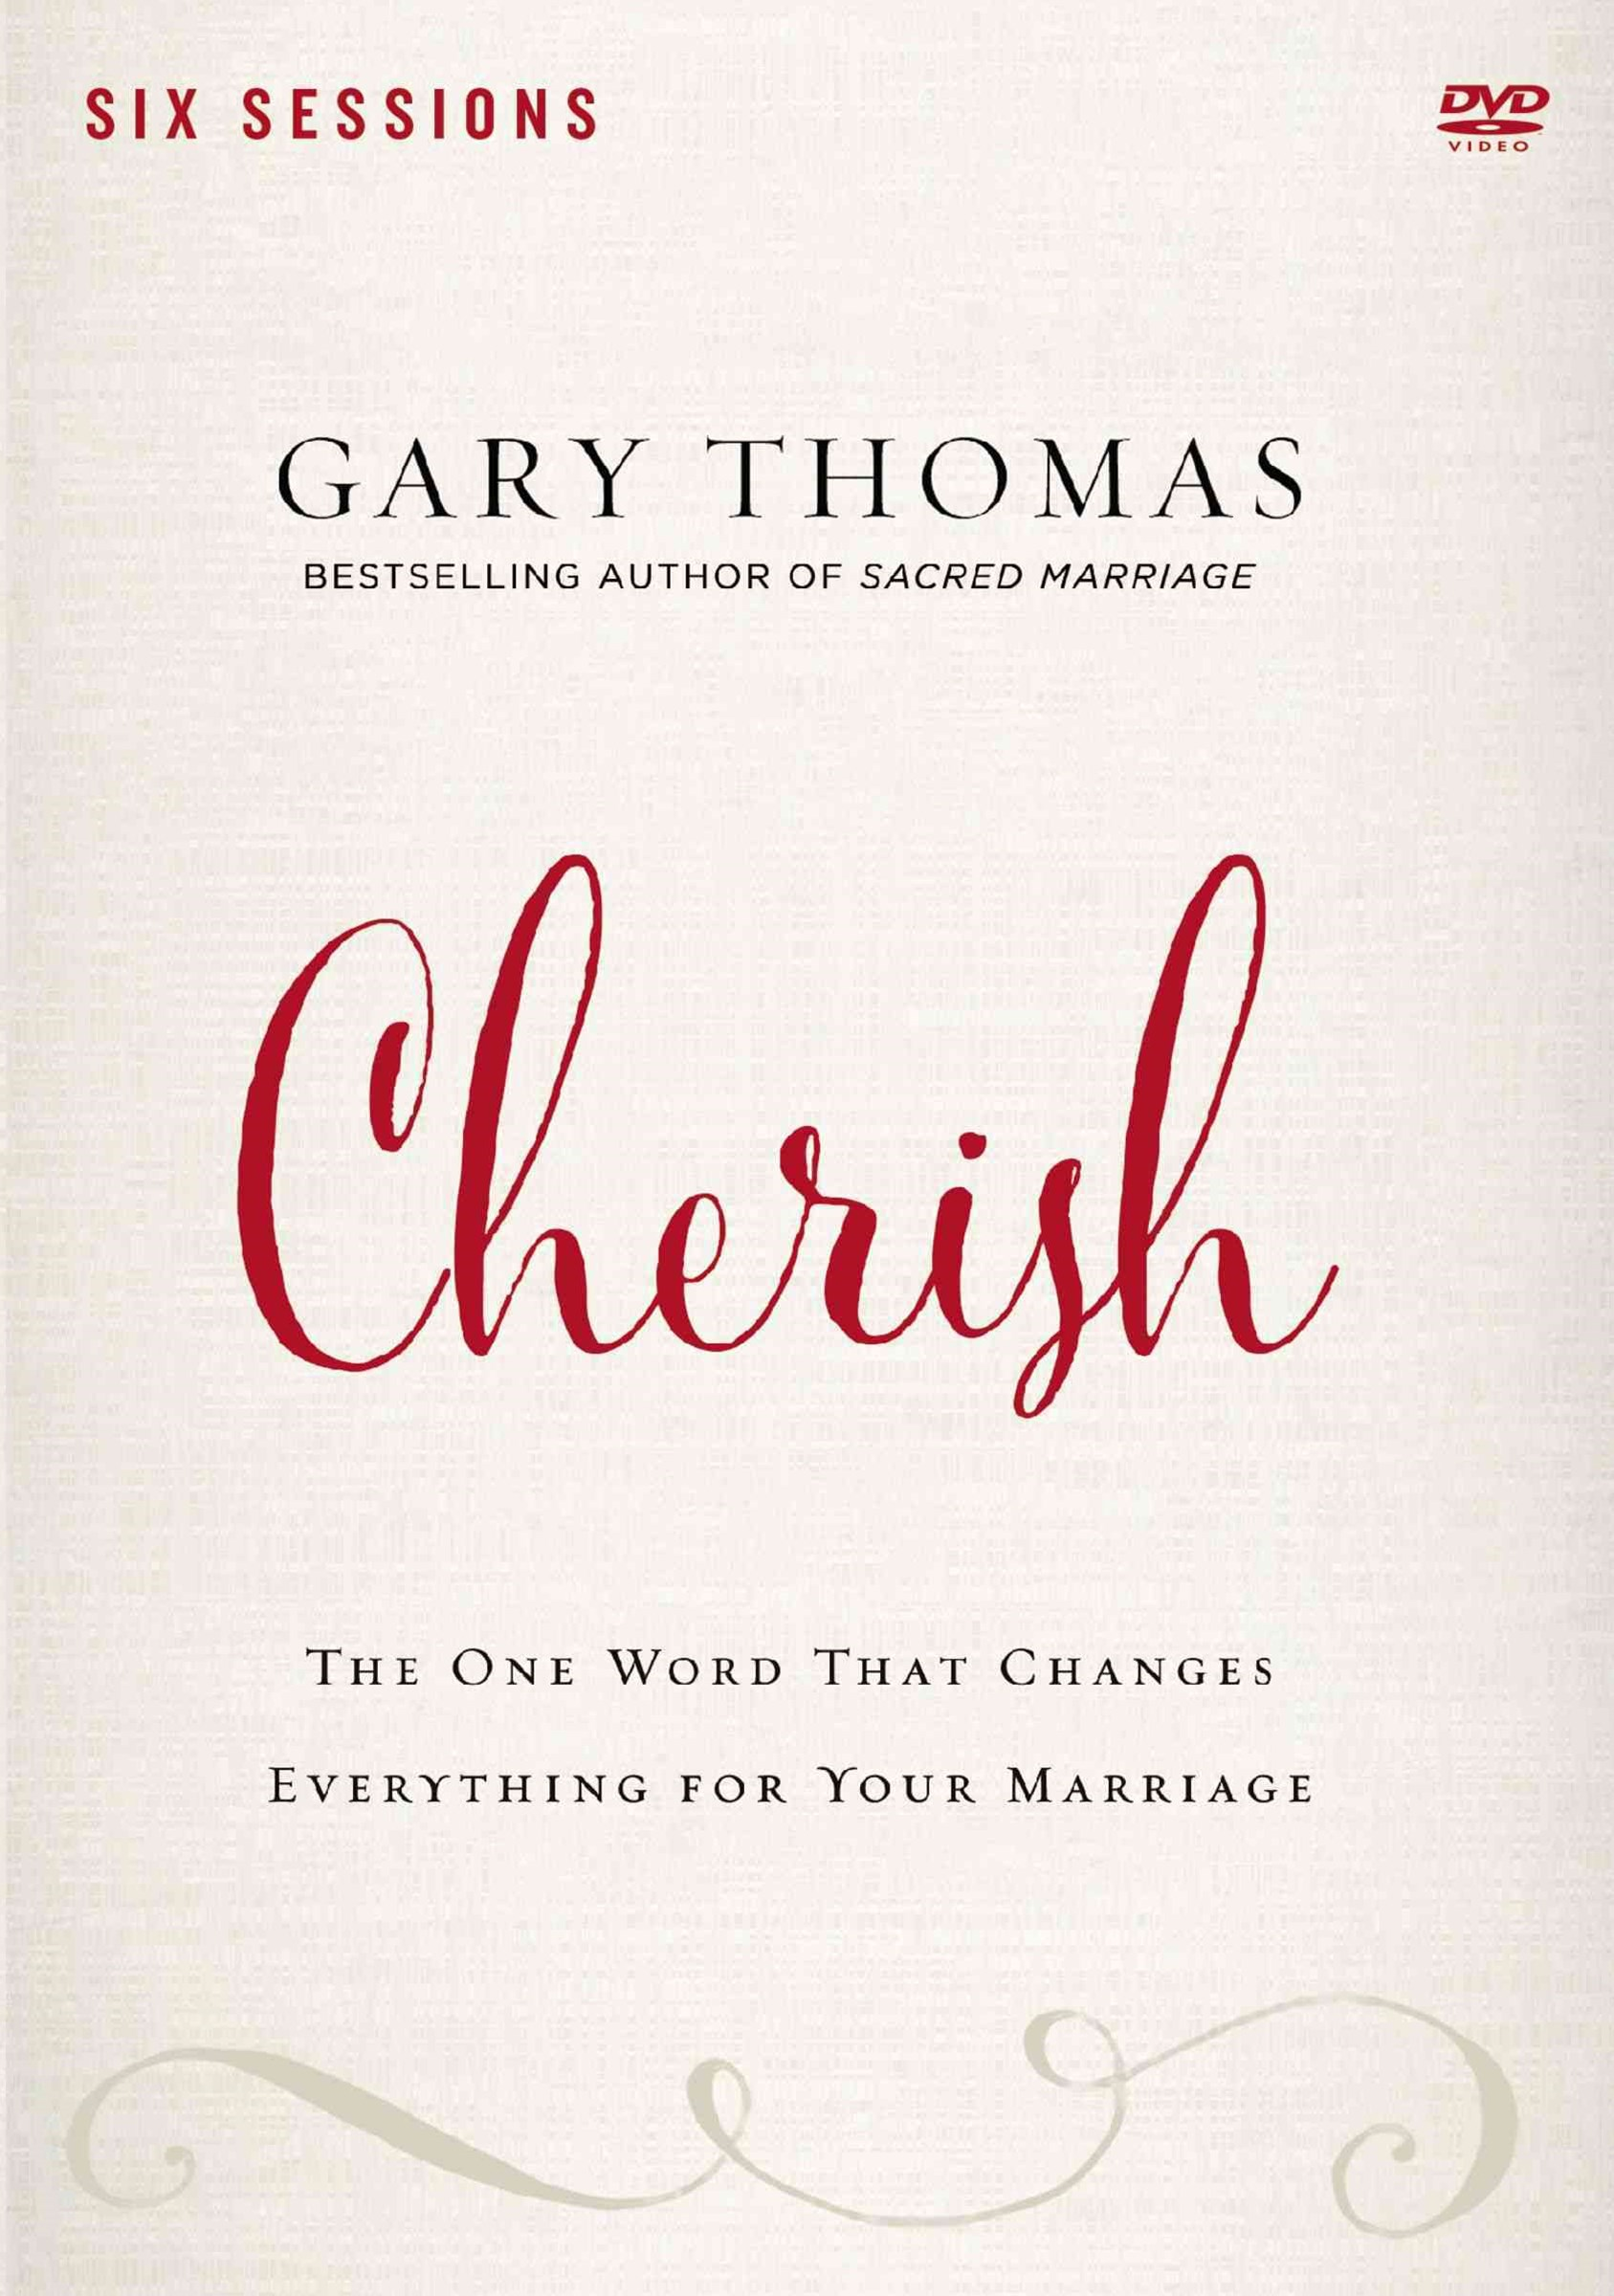 Cherish: A DVD Study: The One Word That Changes Everything for Your Marriage